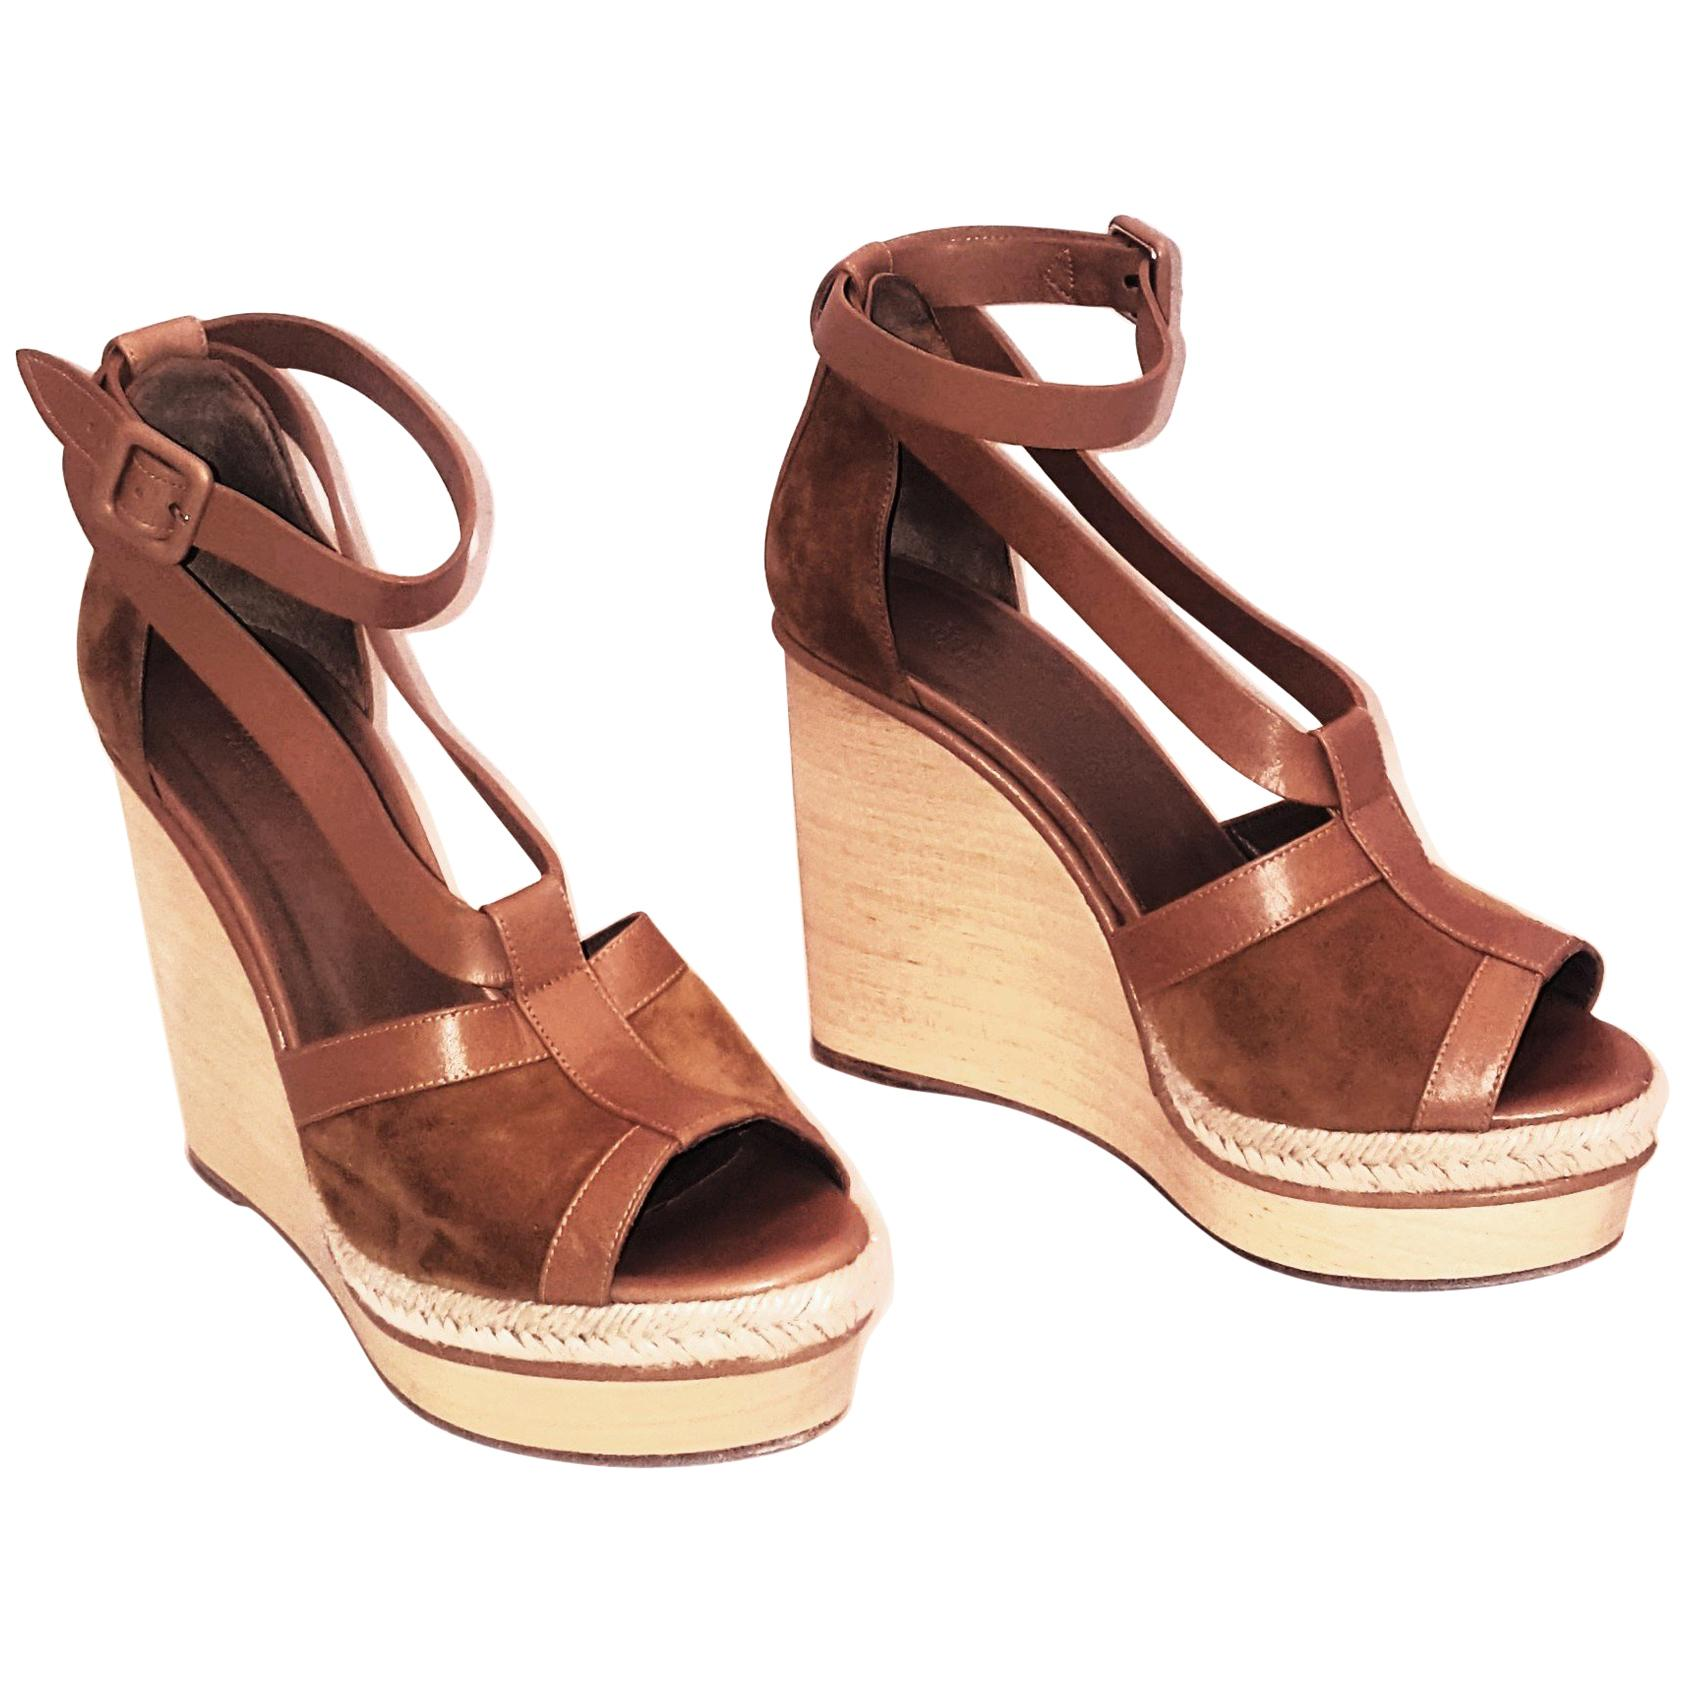 062da513e0e7 Hermes Tan Suede and Leather Wooden Wedge Ibiza Sandals at 1stdibs